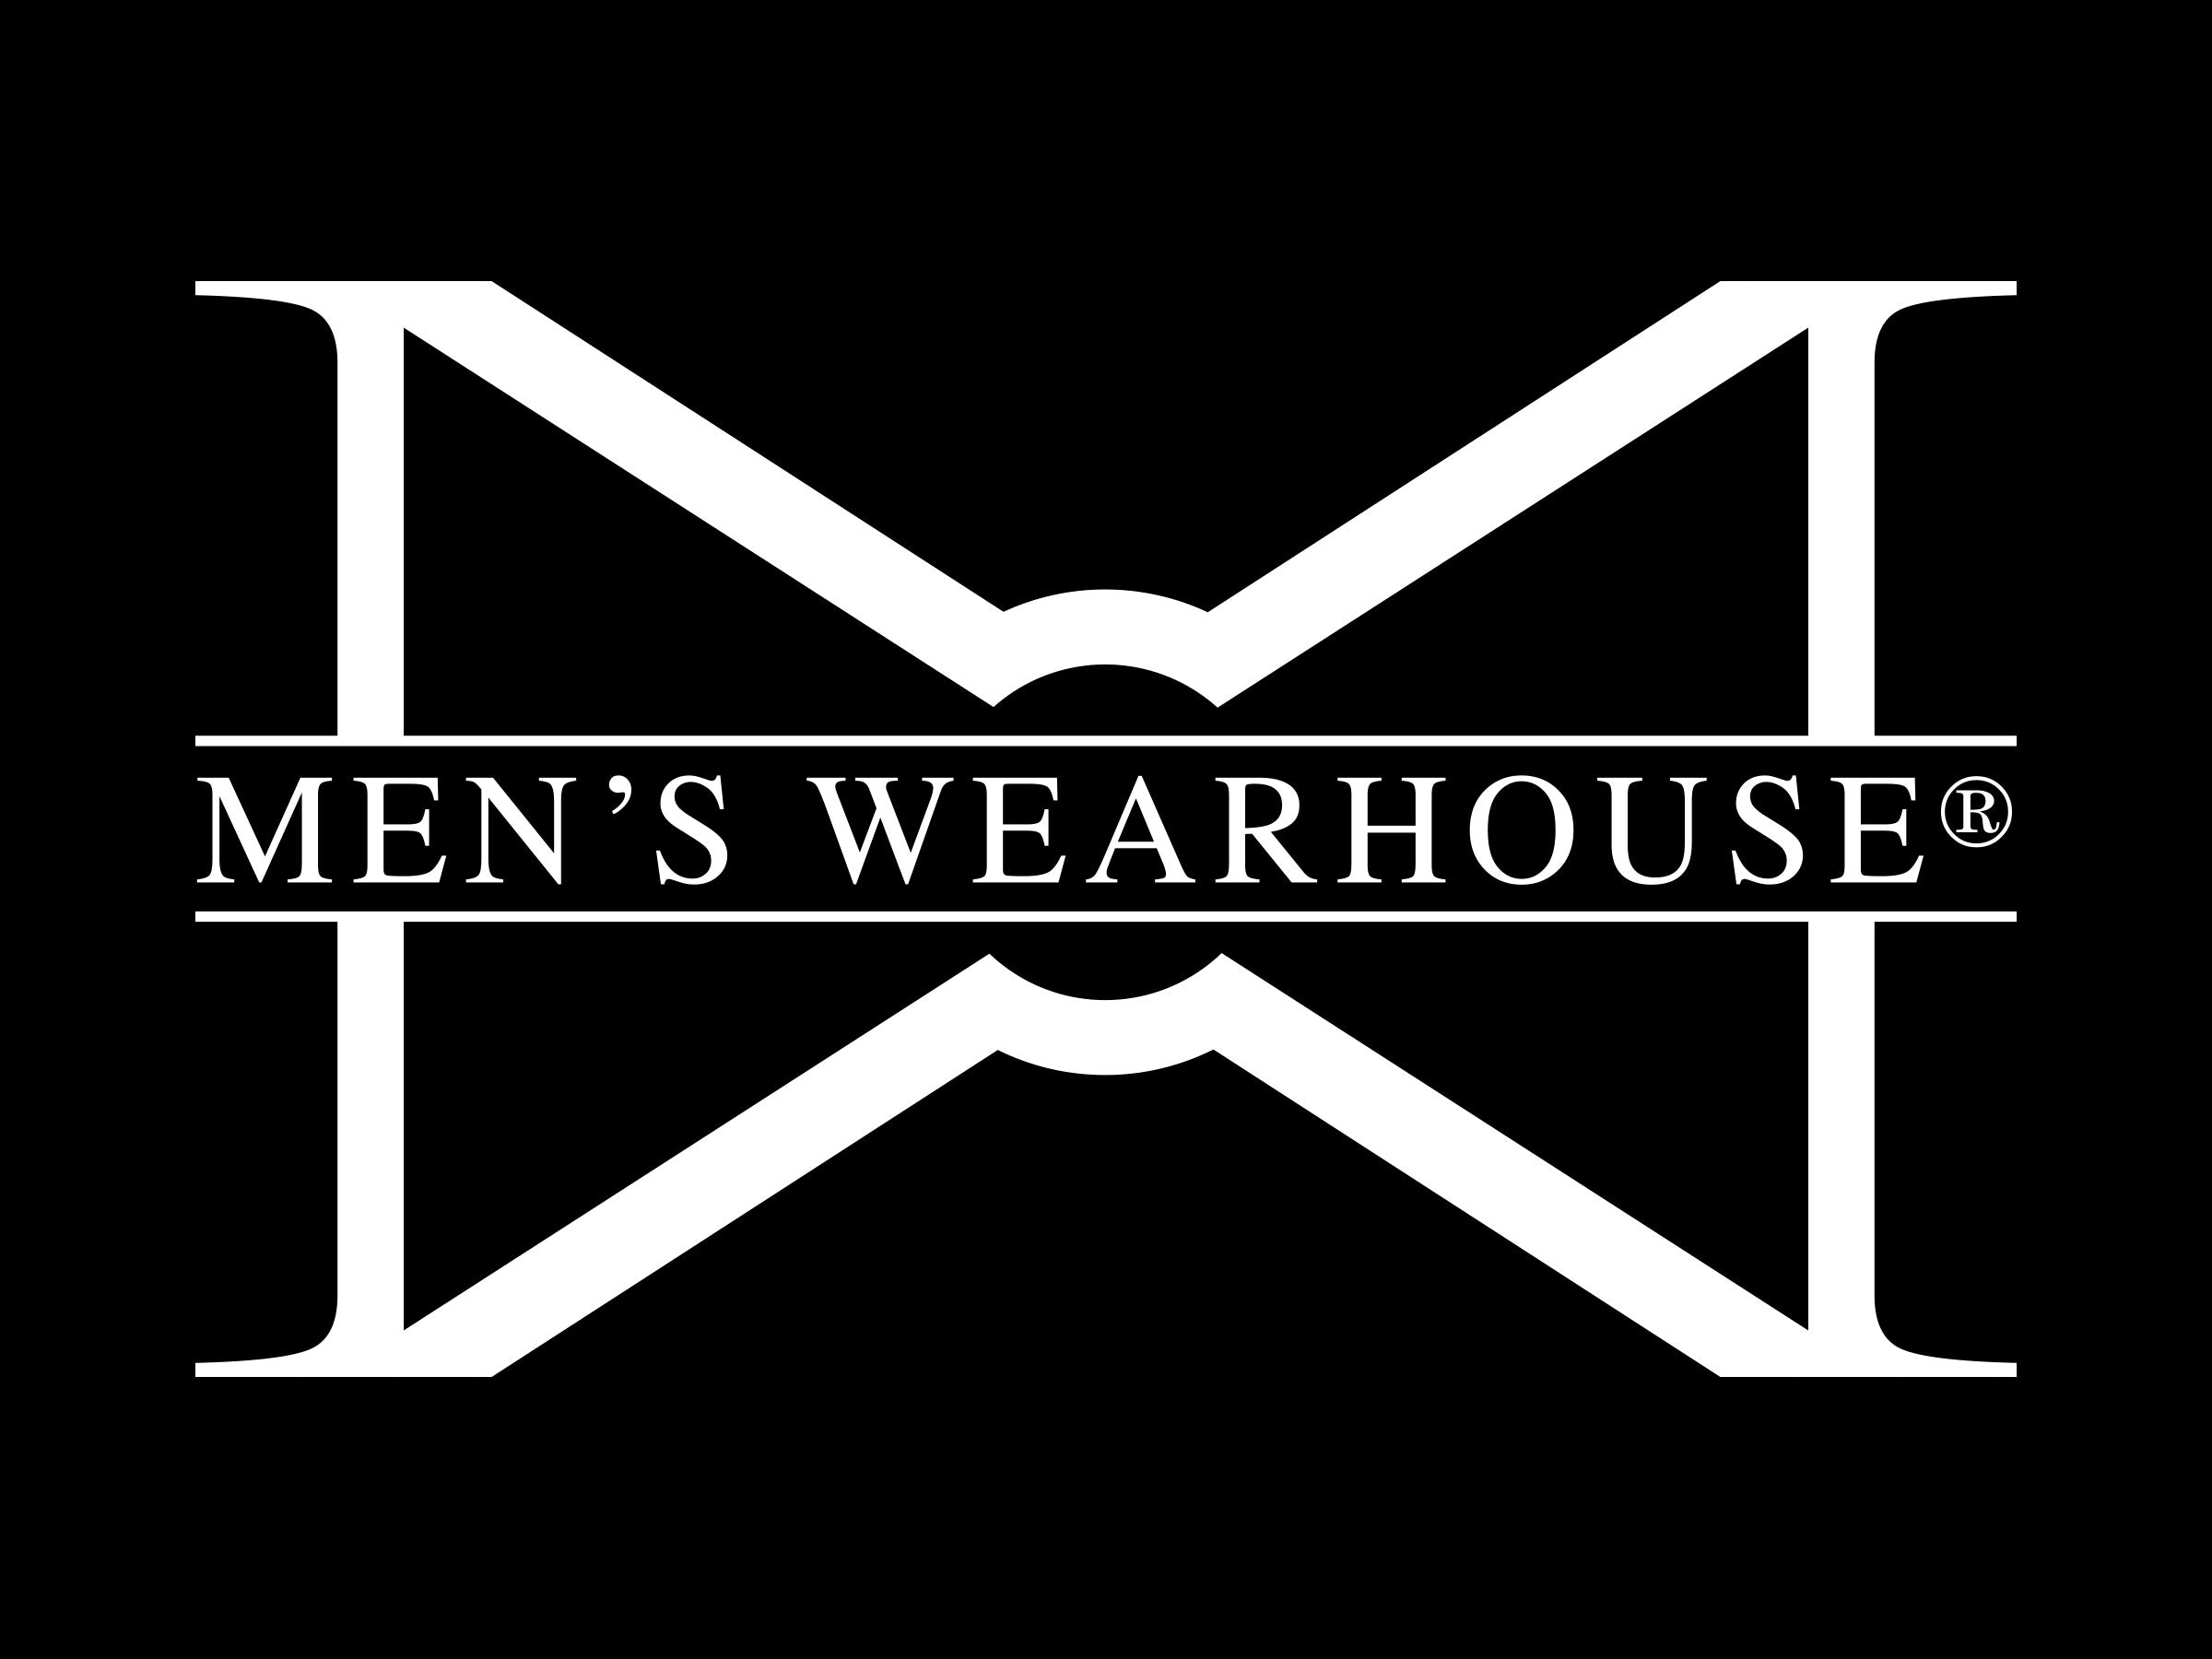 Men's Wearhouse rebrand new logo